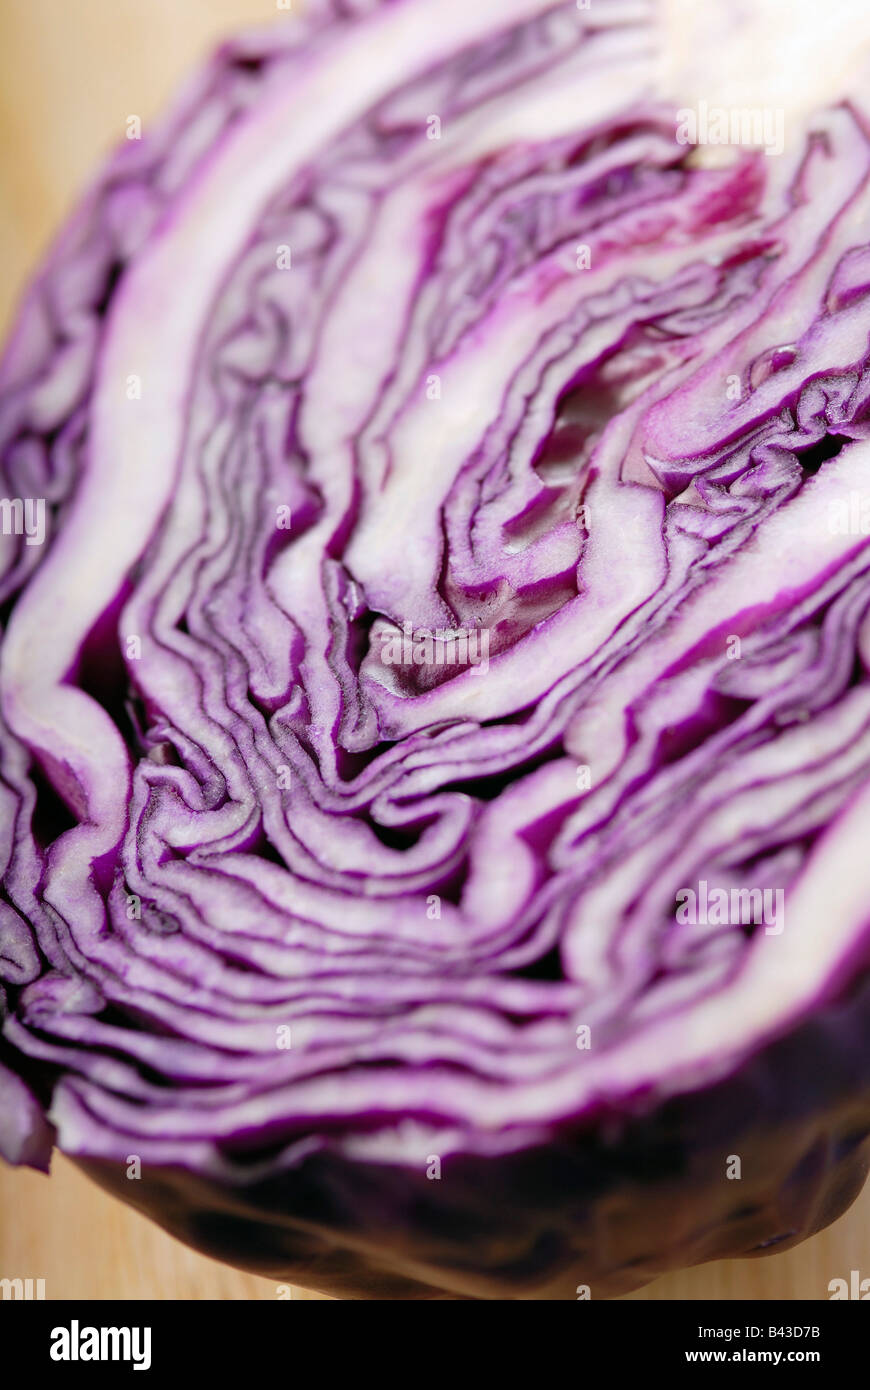 Close-up of a red cabbage Stock Photo